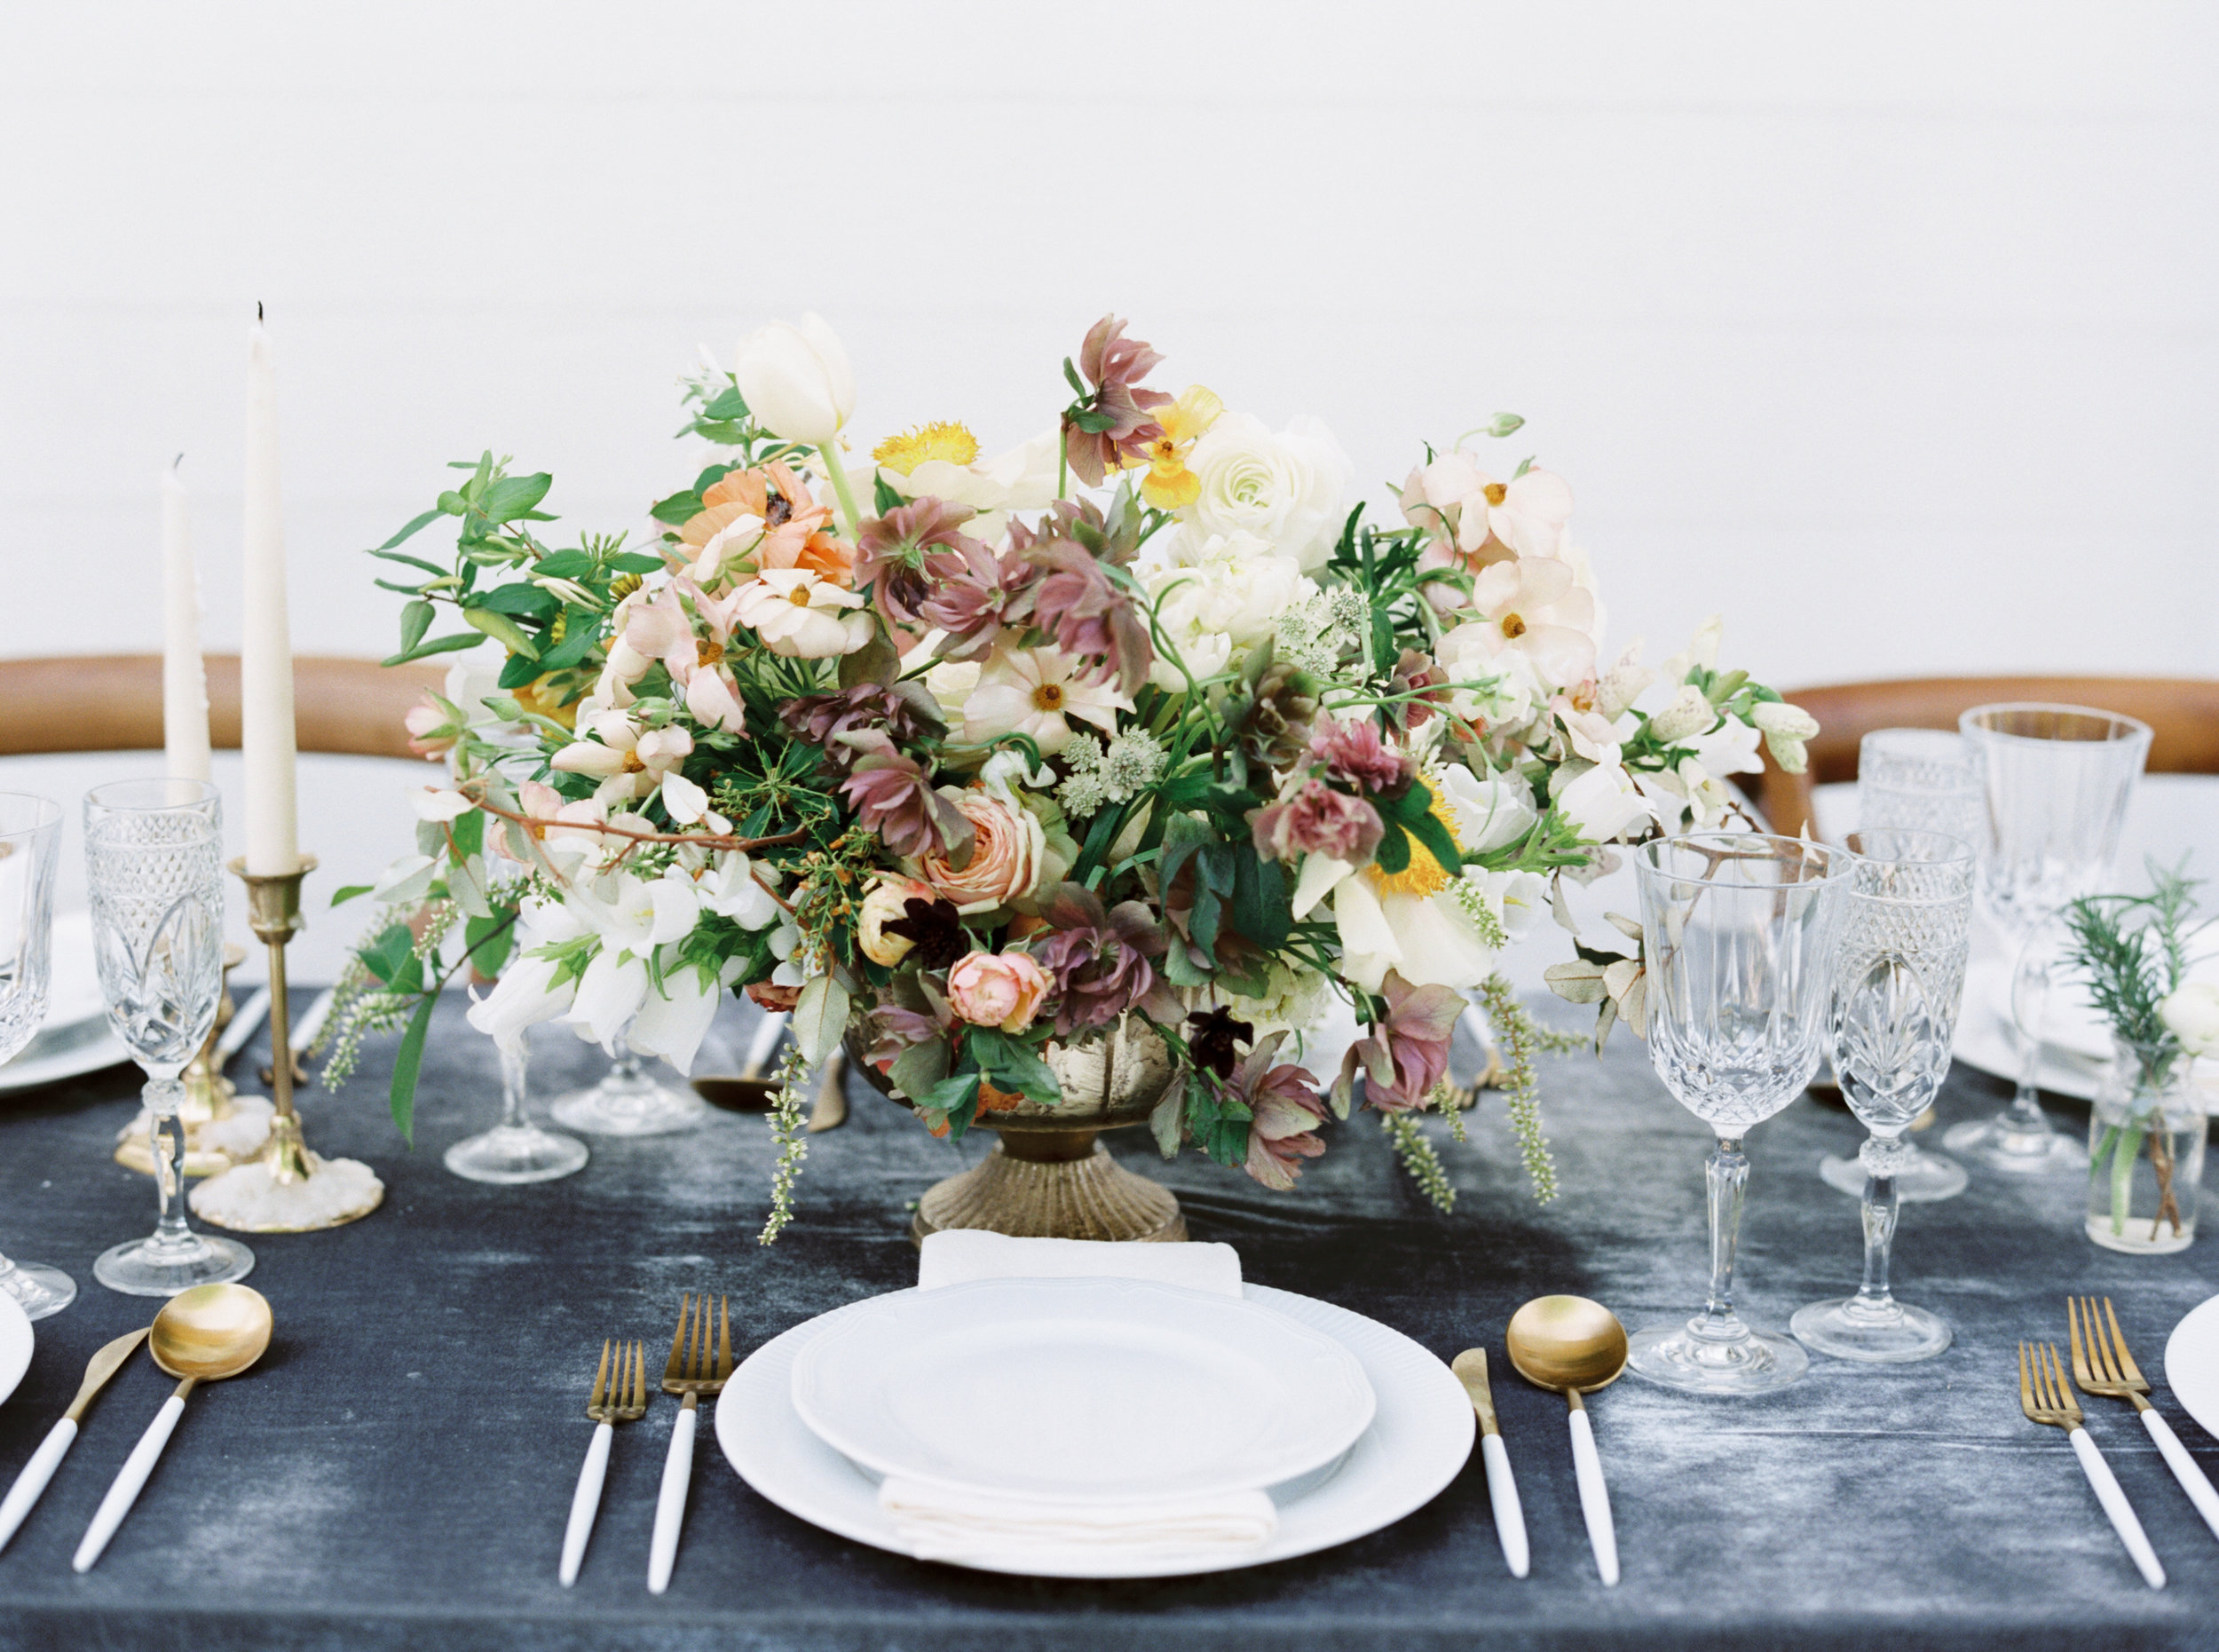 elegant wedding reception tablescape using gray silk velvet table linen and gold and white tableware